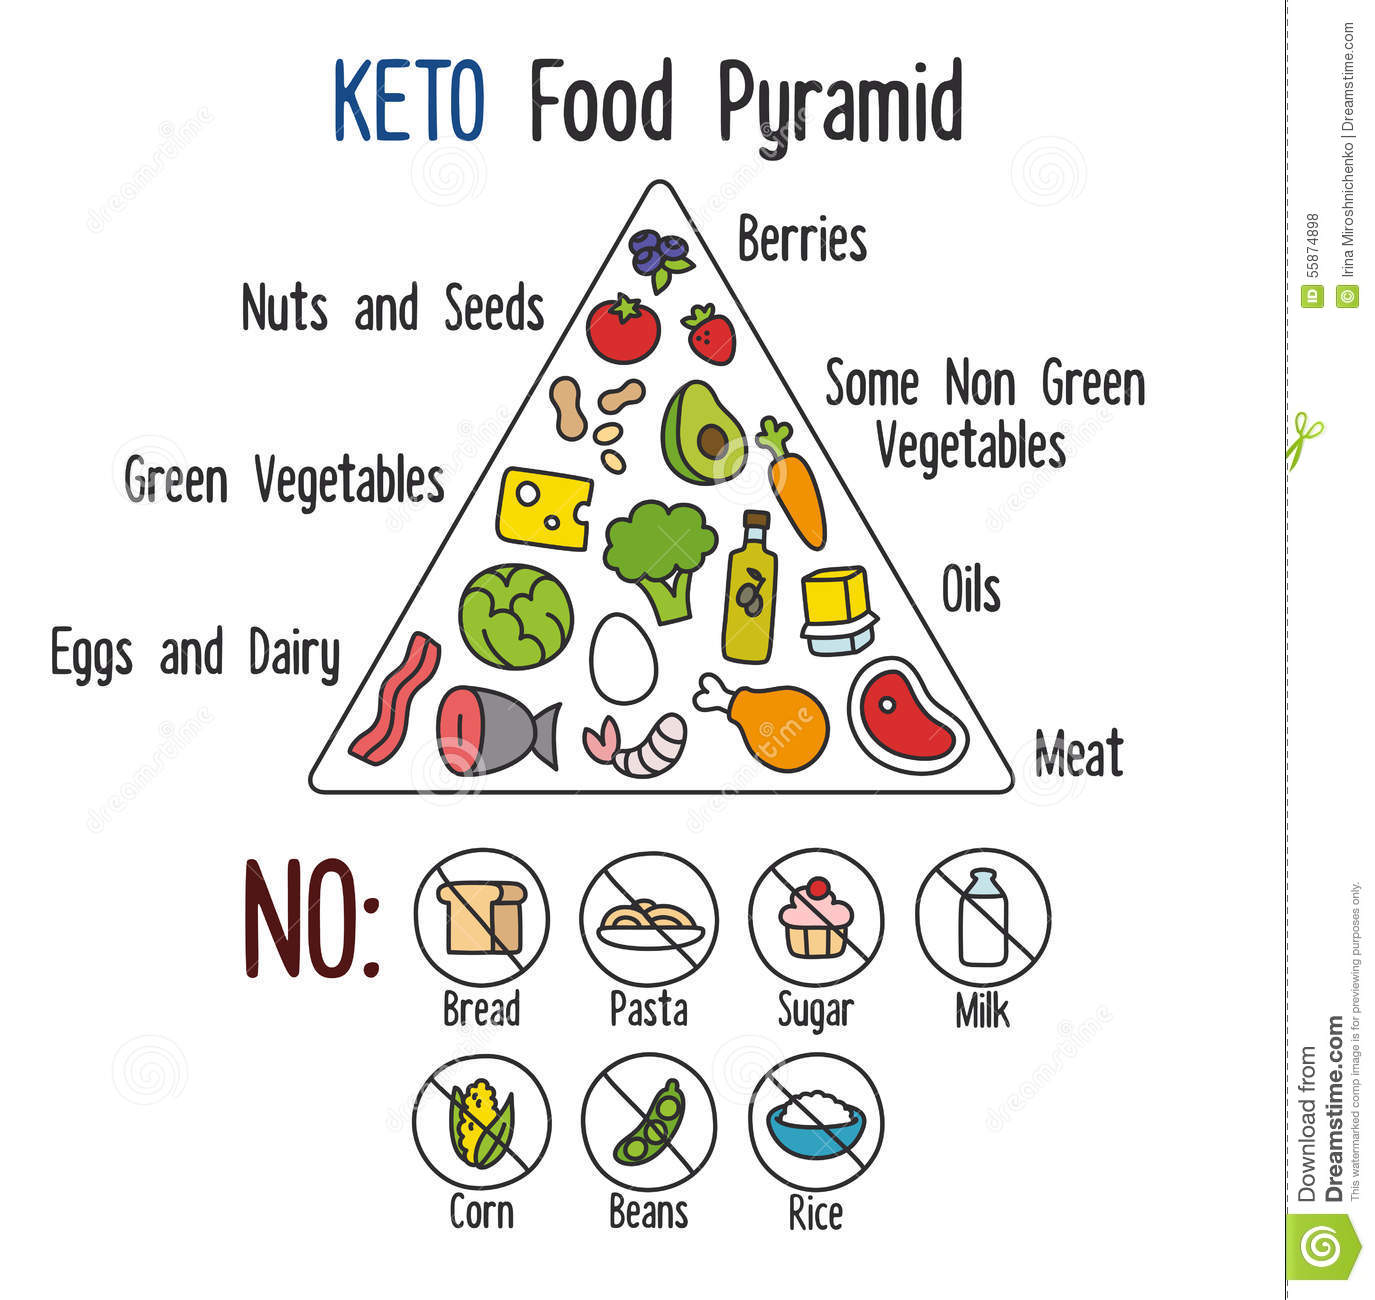 Keto Food Pyramid stock vector. Illustration of keto - 55874898